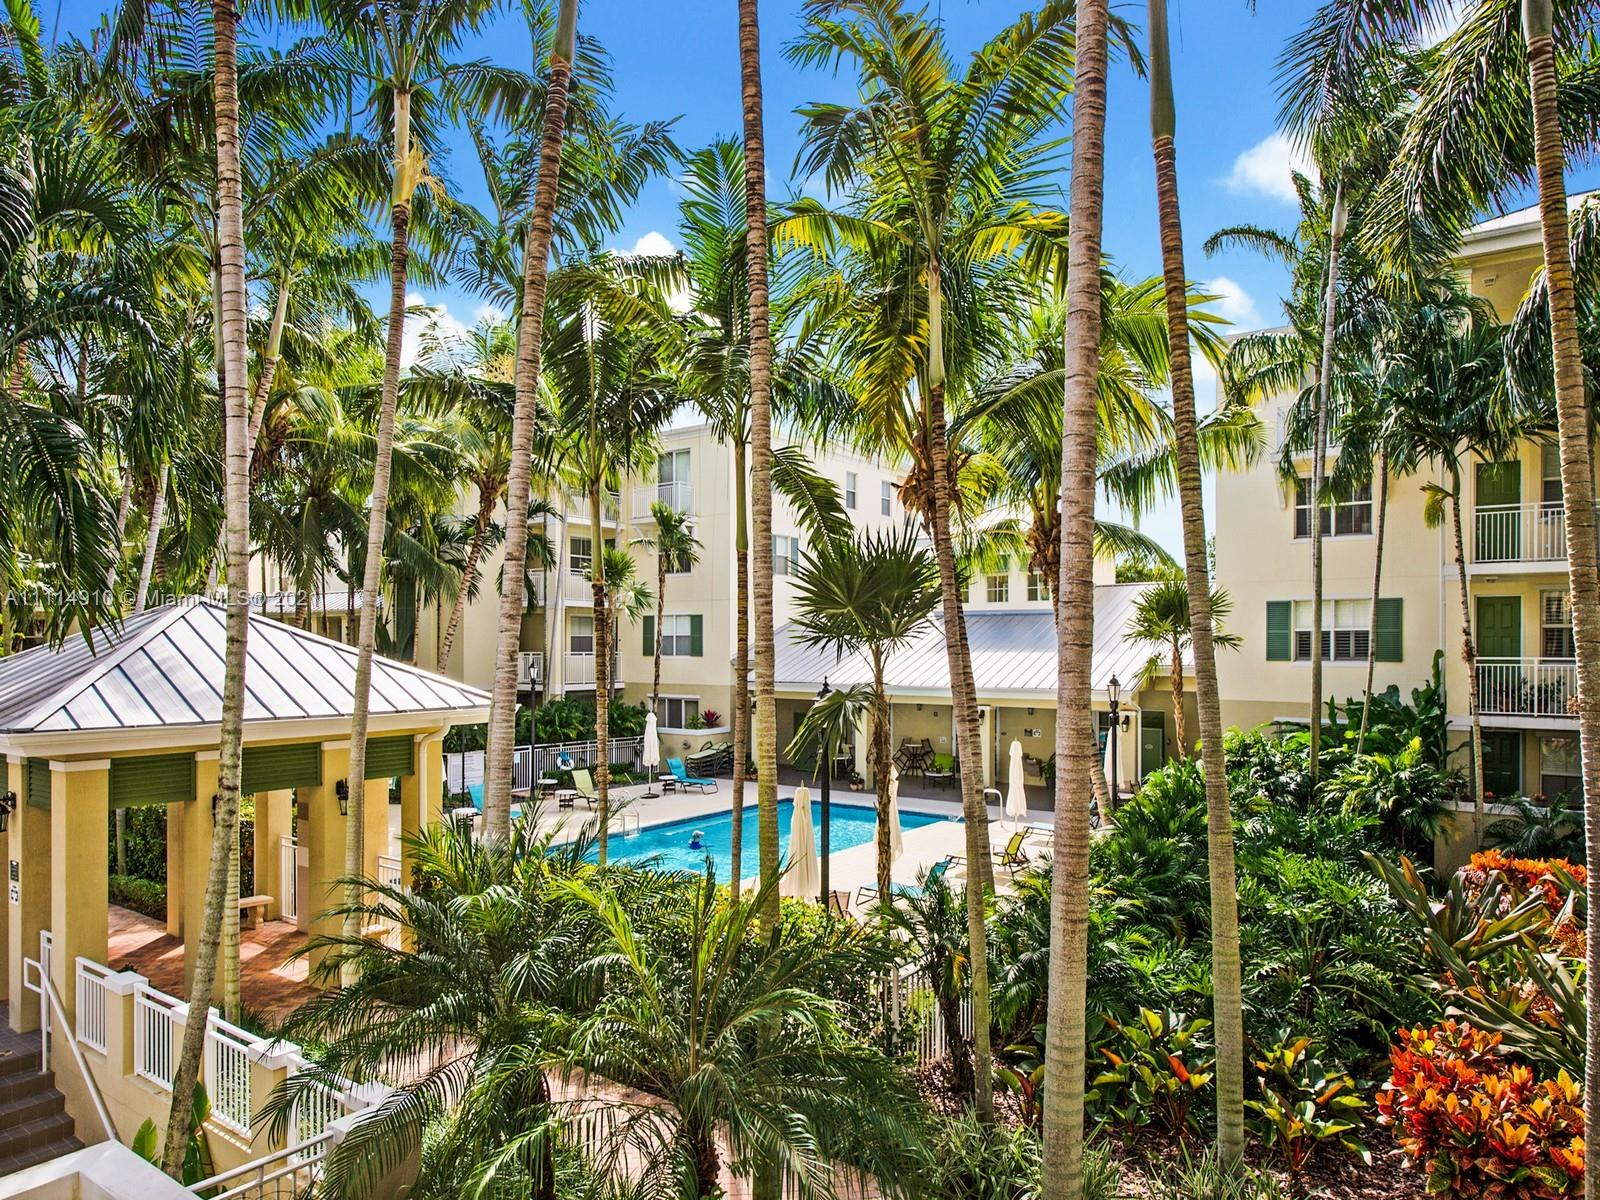 The Reserve Of Pinecrest,Reserve at Pinecrest Condo,For Sale,The Reserve Of Pinecrest,Reserve at Pinecrest Brickell,realty,broker,condos near me